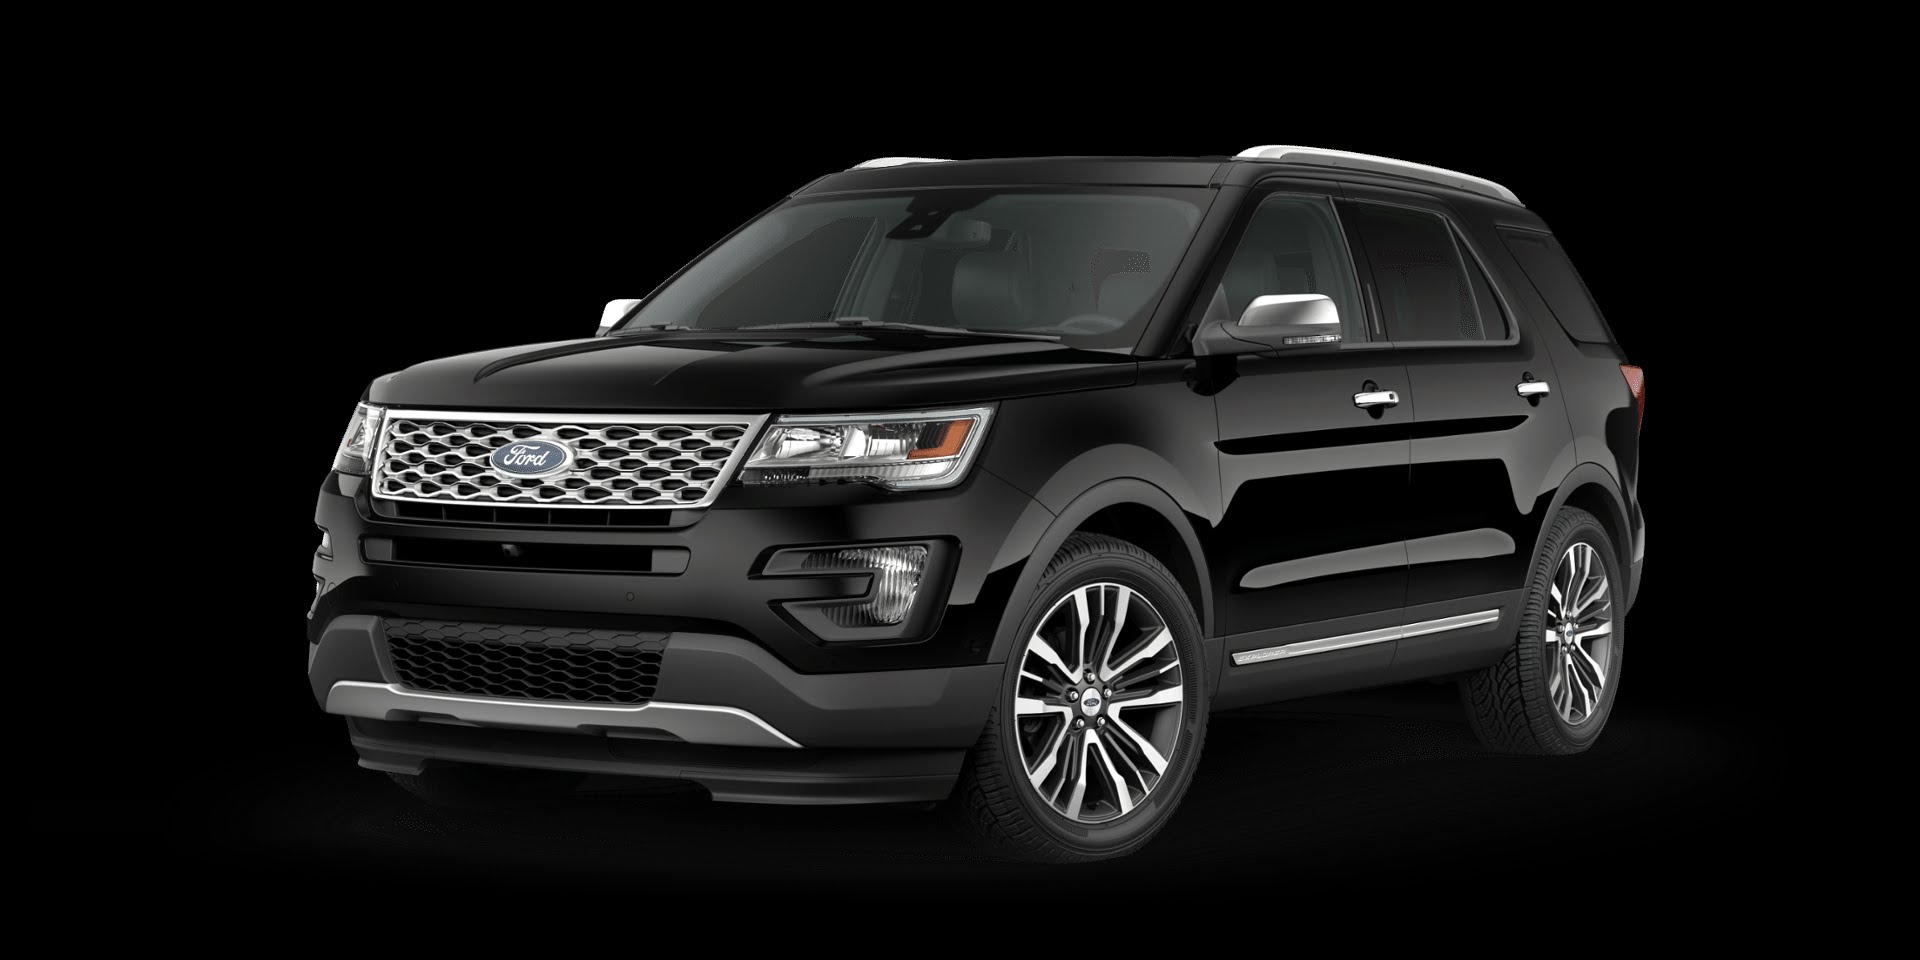 Ford Explorer 2017 Lease >> The Best 2017 Ford Explorer Lease Deals In Ny Nj Ct Pa